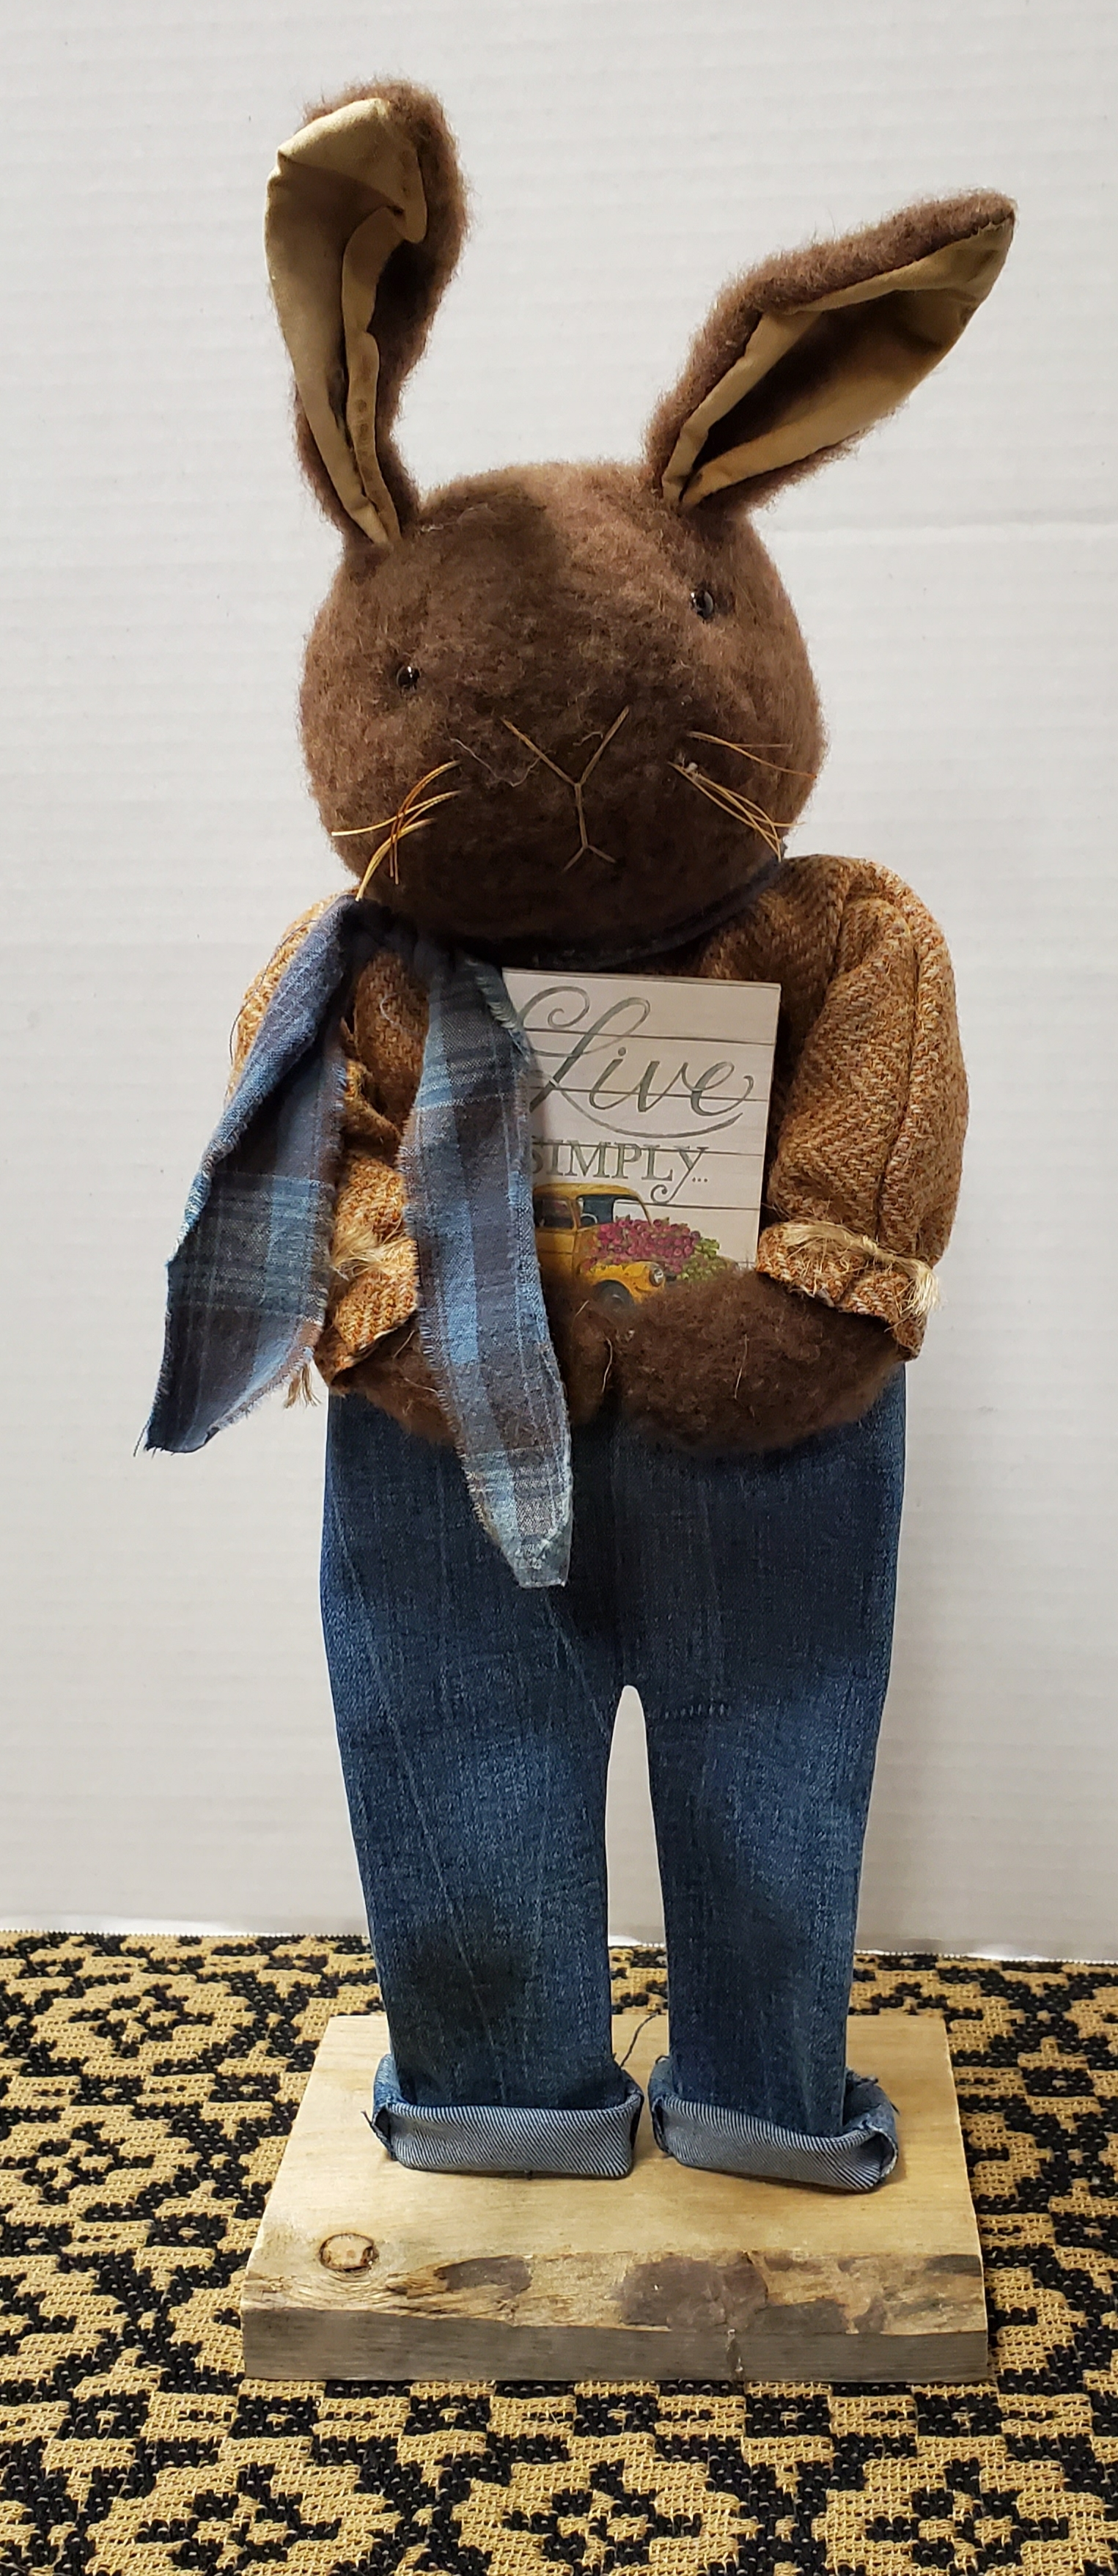 Brown Bunny with Jeans Holding Live Simply Book